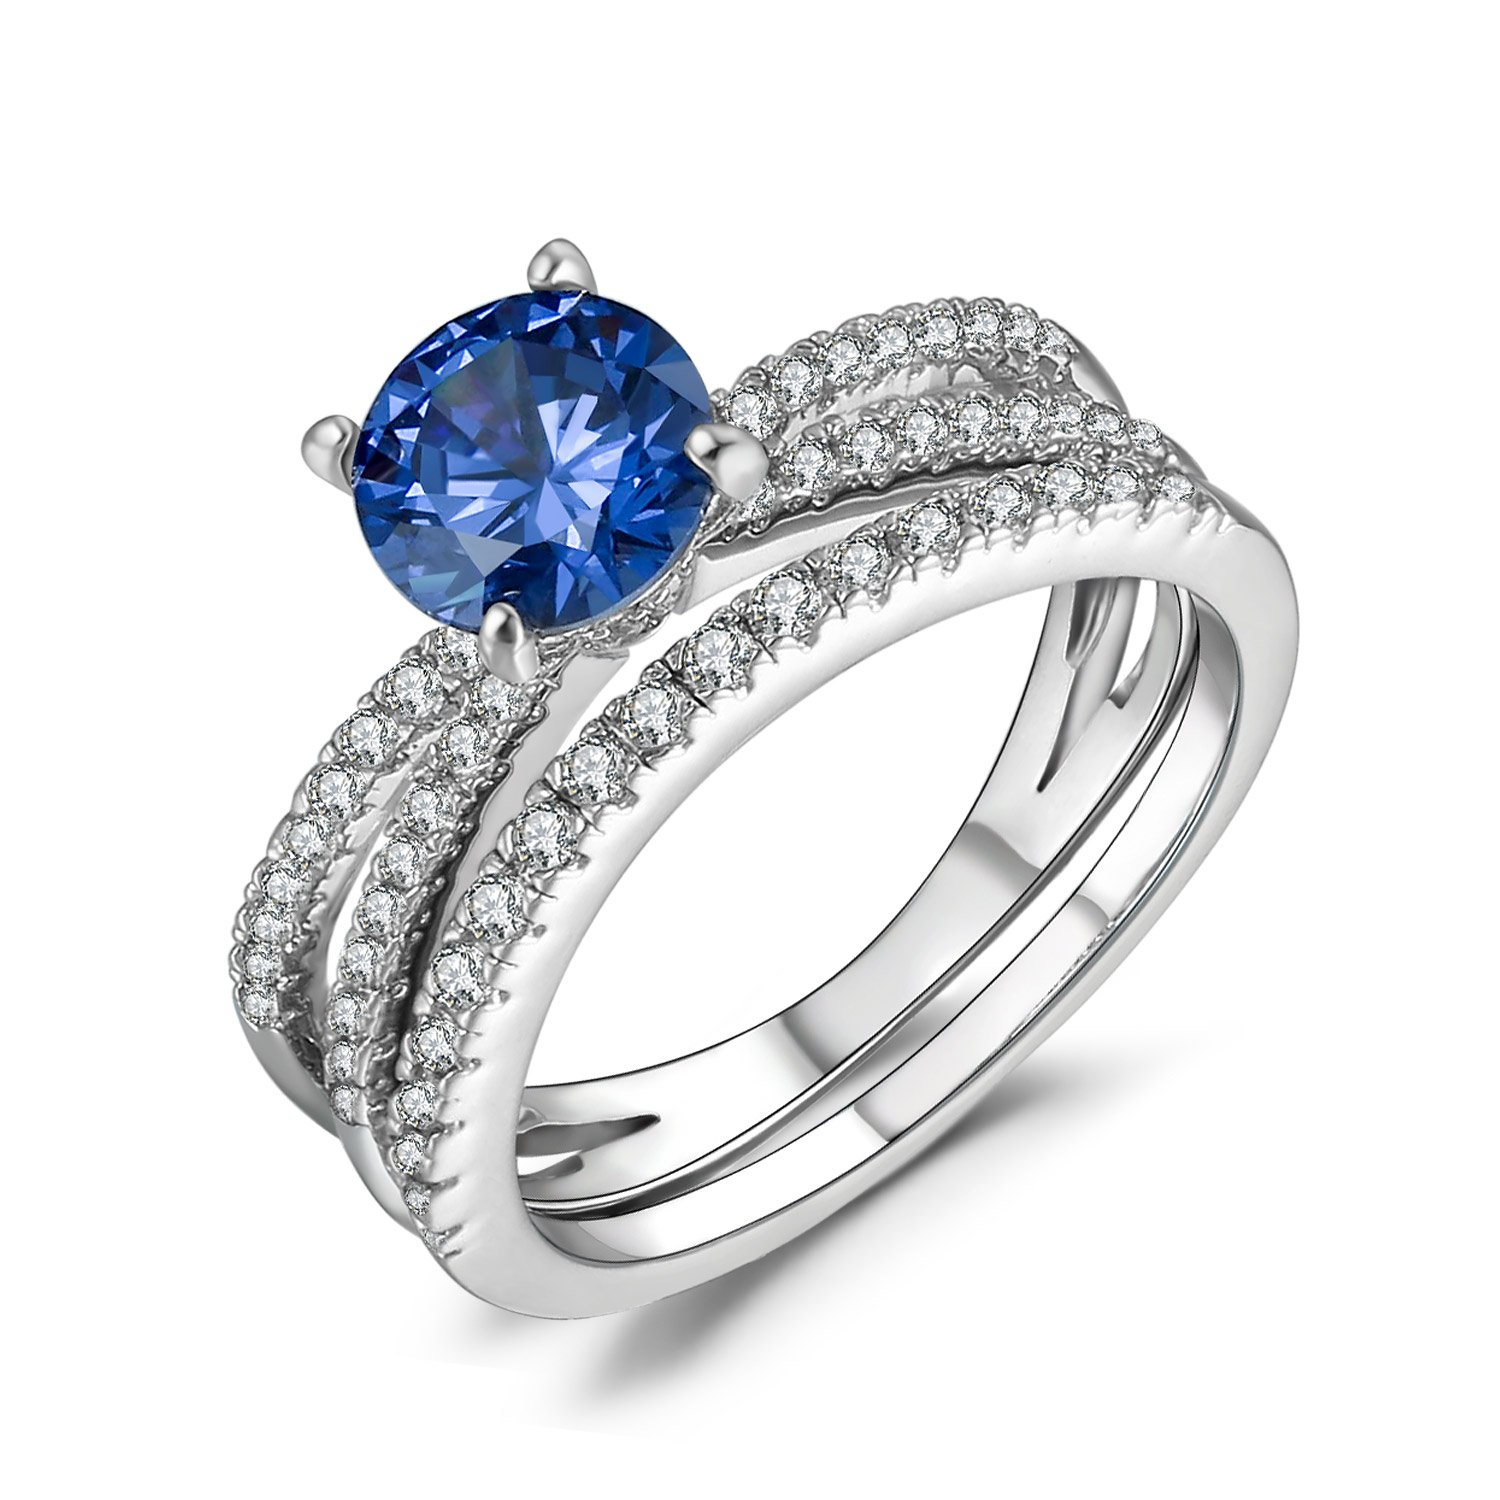 Caperci Women's 925 Sterling Silver Round Tanzanite and Cubic Zirconia Bridal Engagement Wedding Ring Sets, Size 7 by Caperci